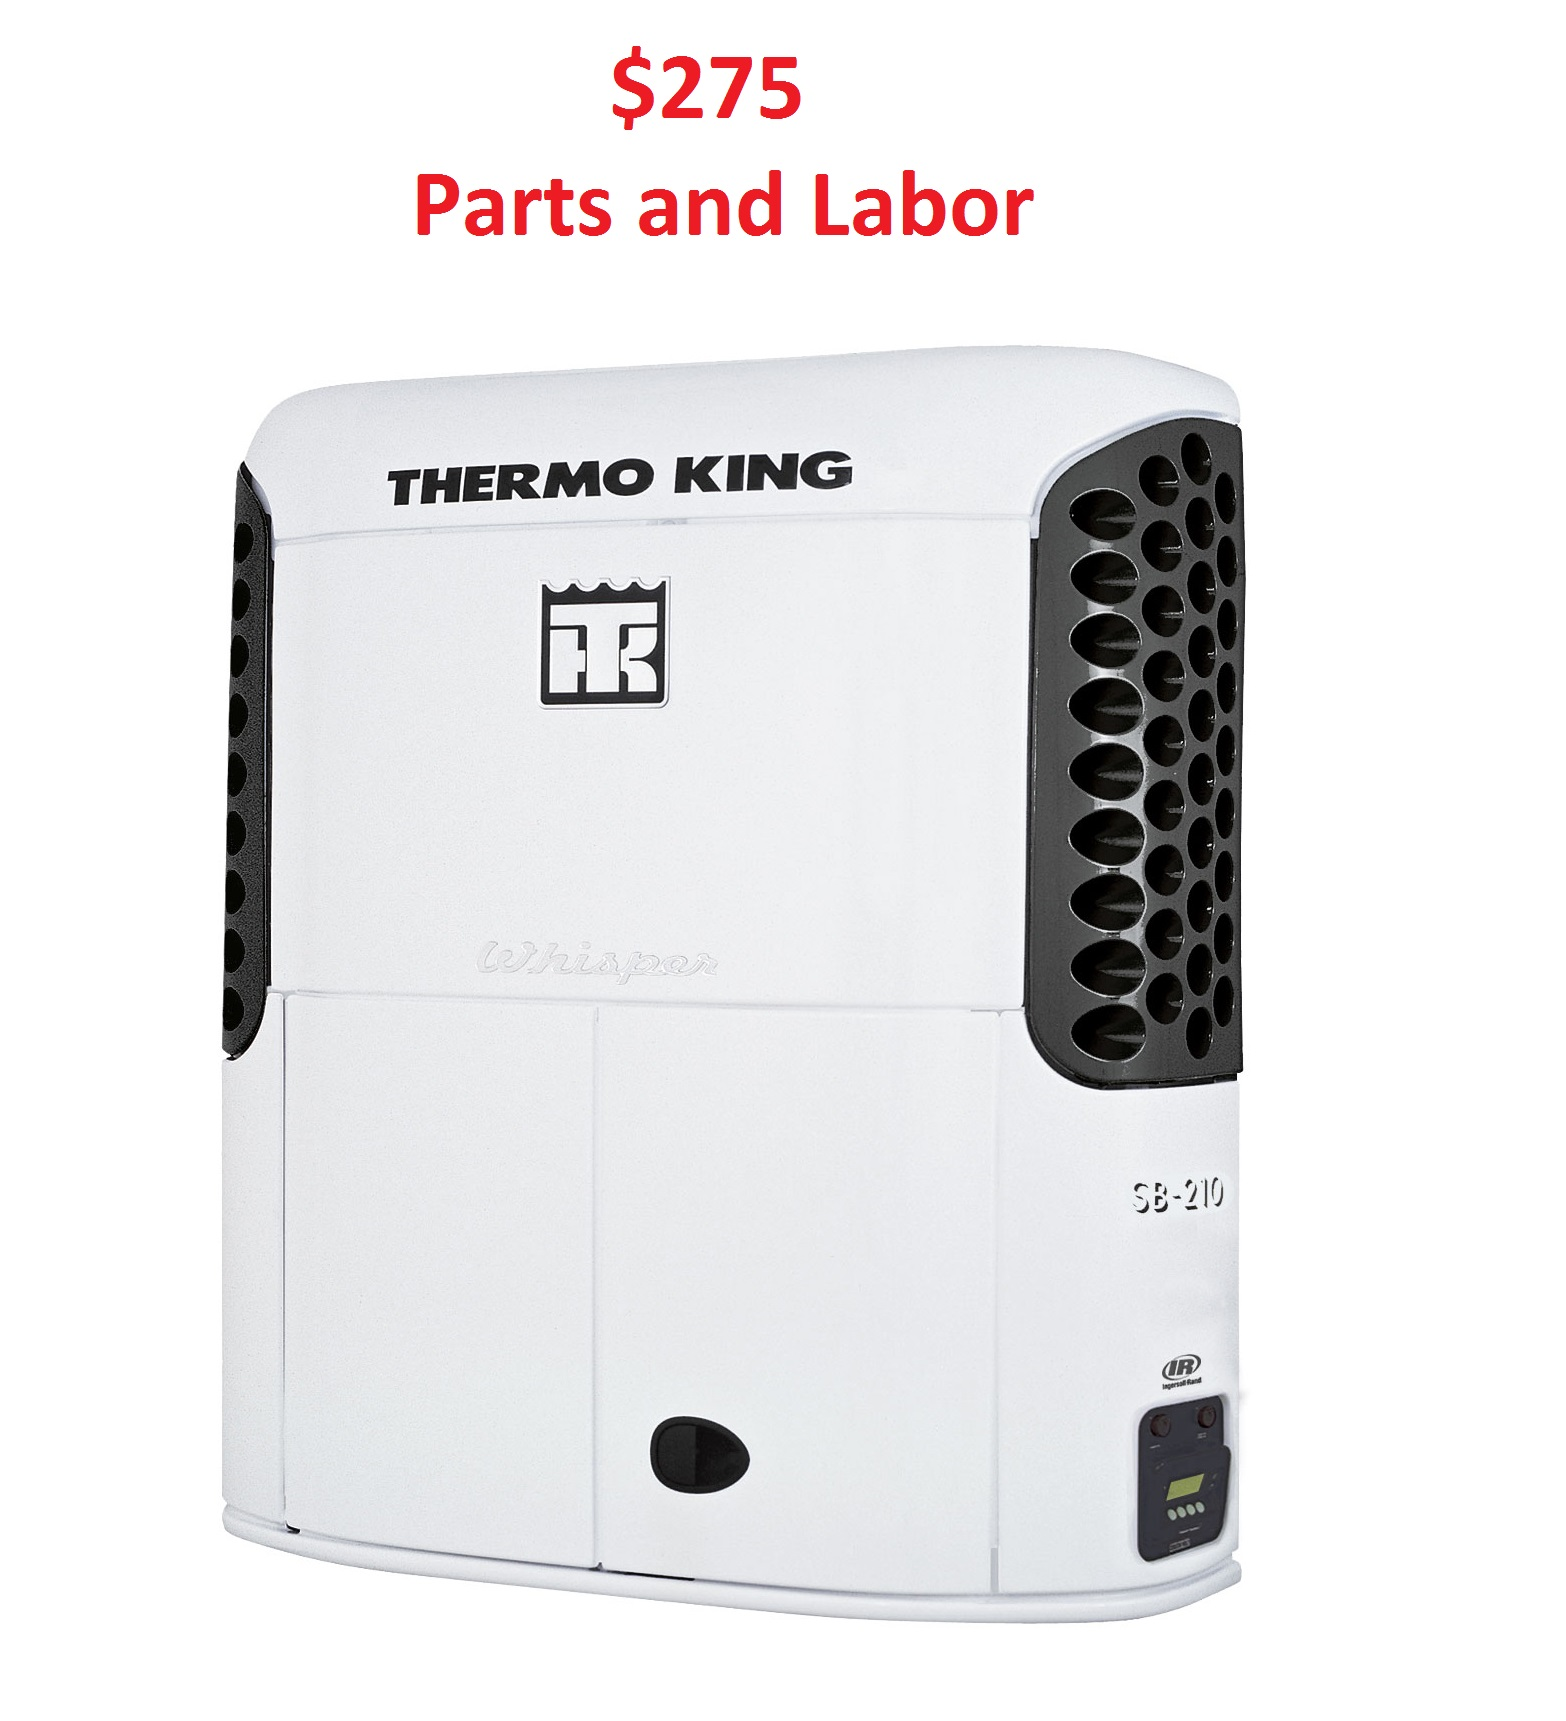 Specials Illinois Auto Central Thermo King